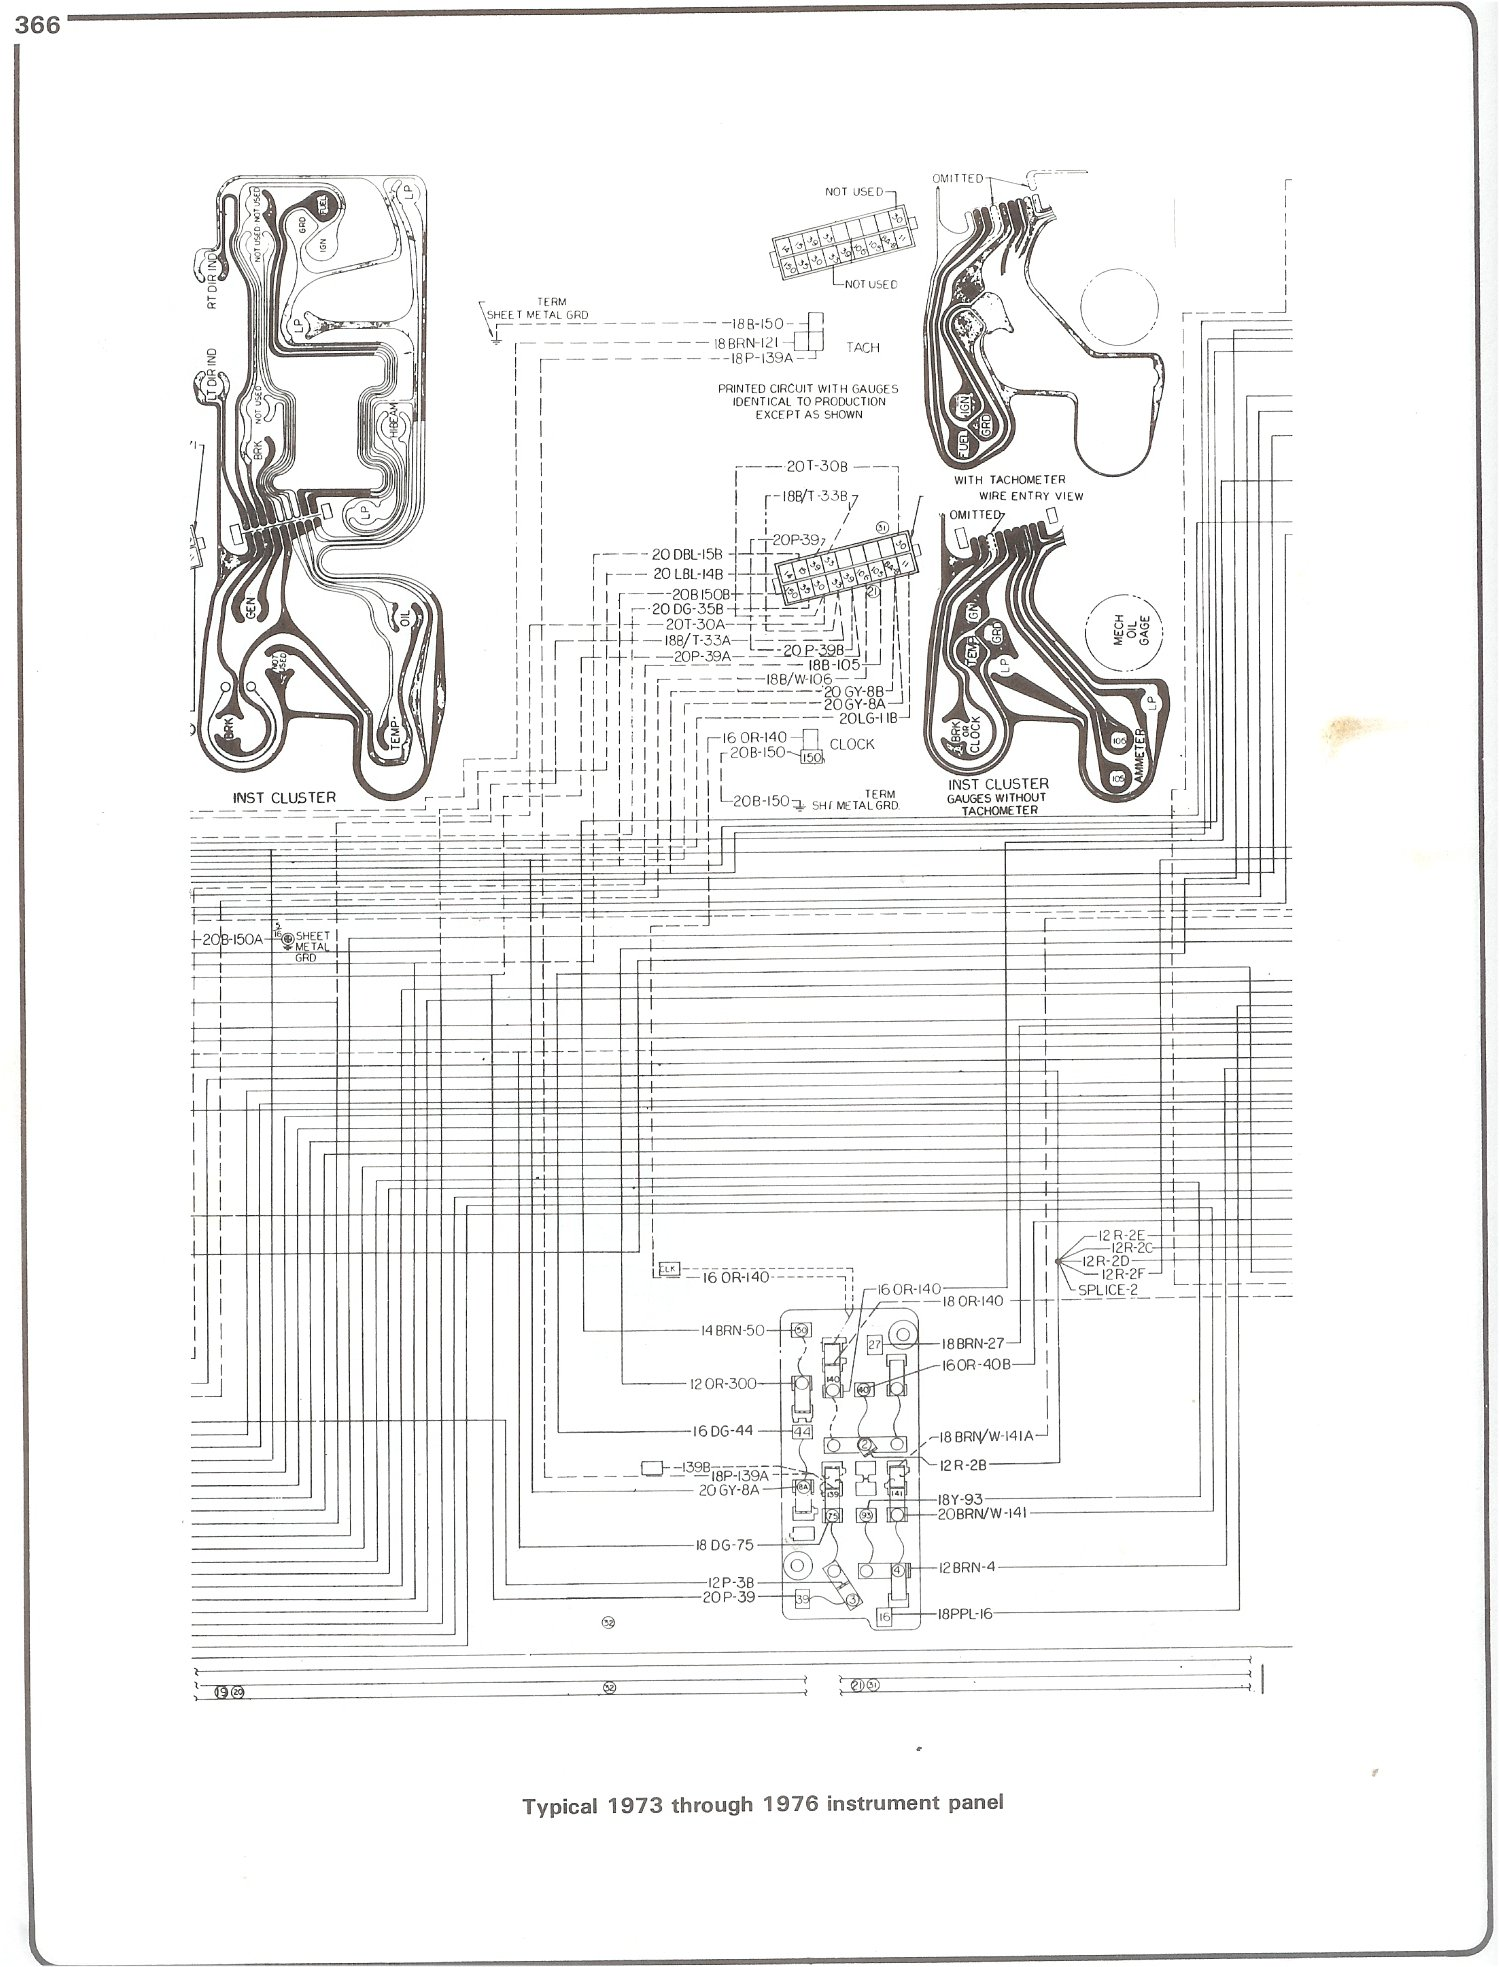 73 76_instrument complete 73 87 wiring diagrams 1968 Chevy C10 Wiring-Diagram at mifinder.co